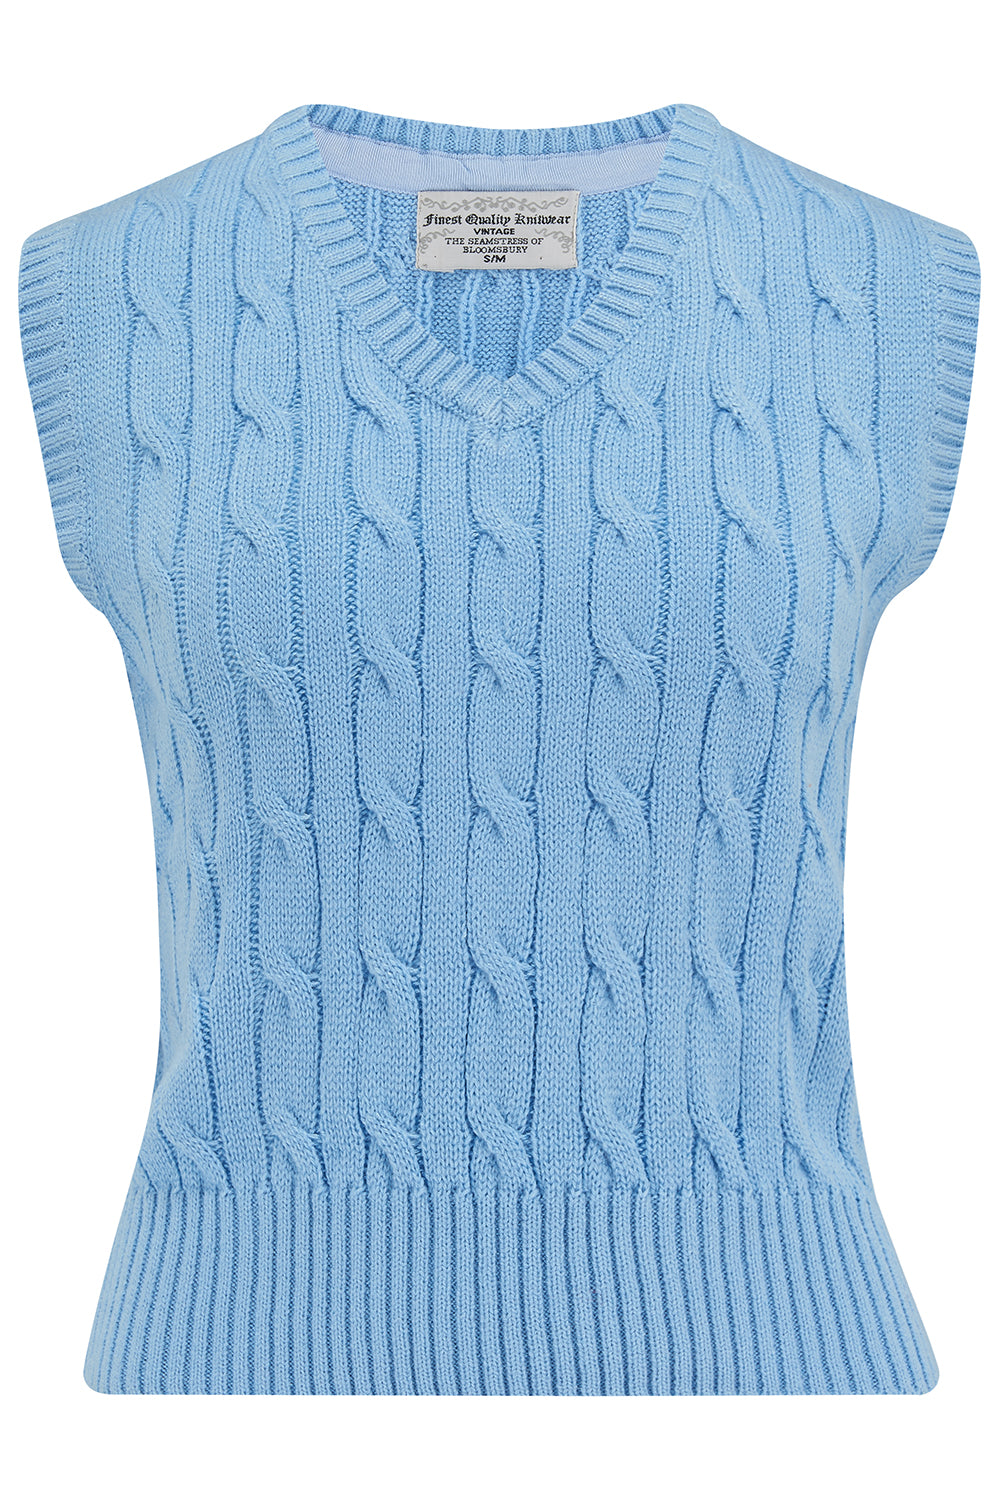 Vintage Sweaters & Cardigans: 1940s, 1950s, 1960s Cable Knit Slipover in Sky Blue Stunning 1940s True Vintage Style £29.00 AT vintagedancer.com